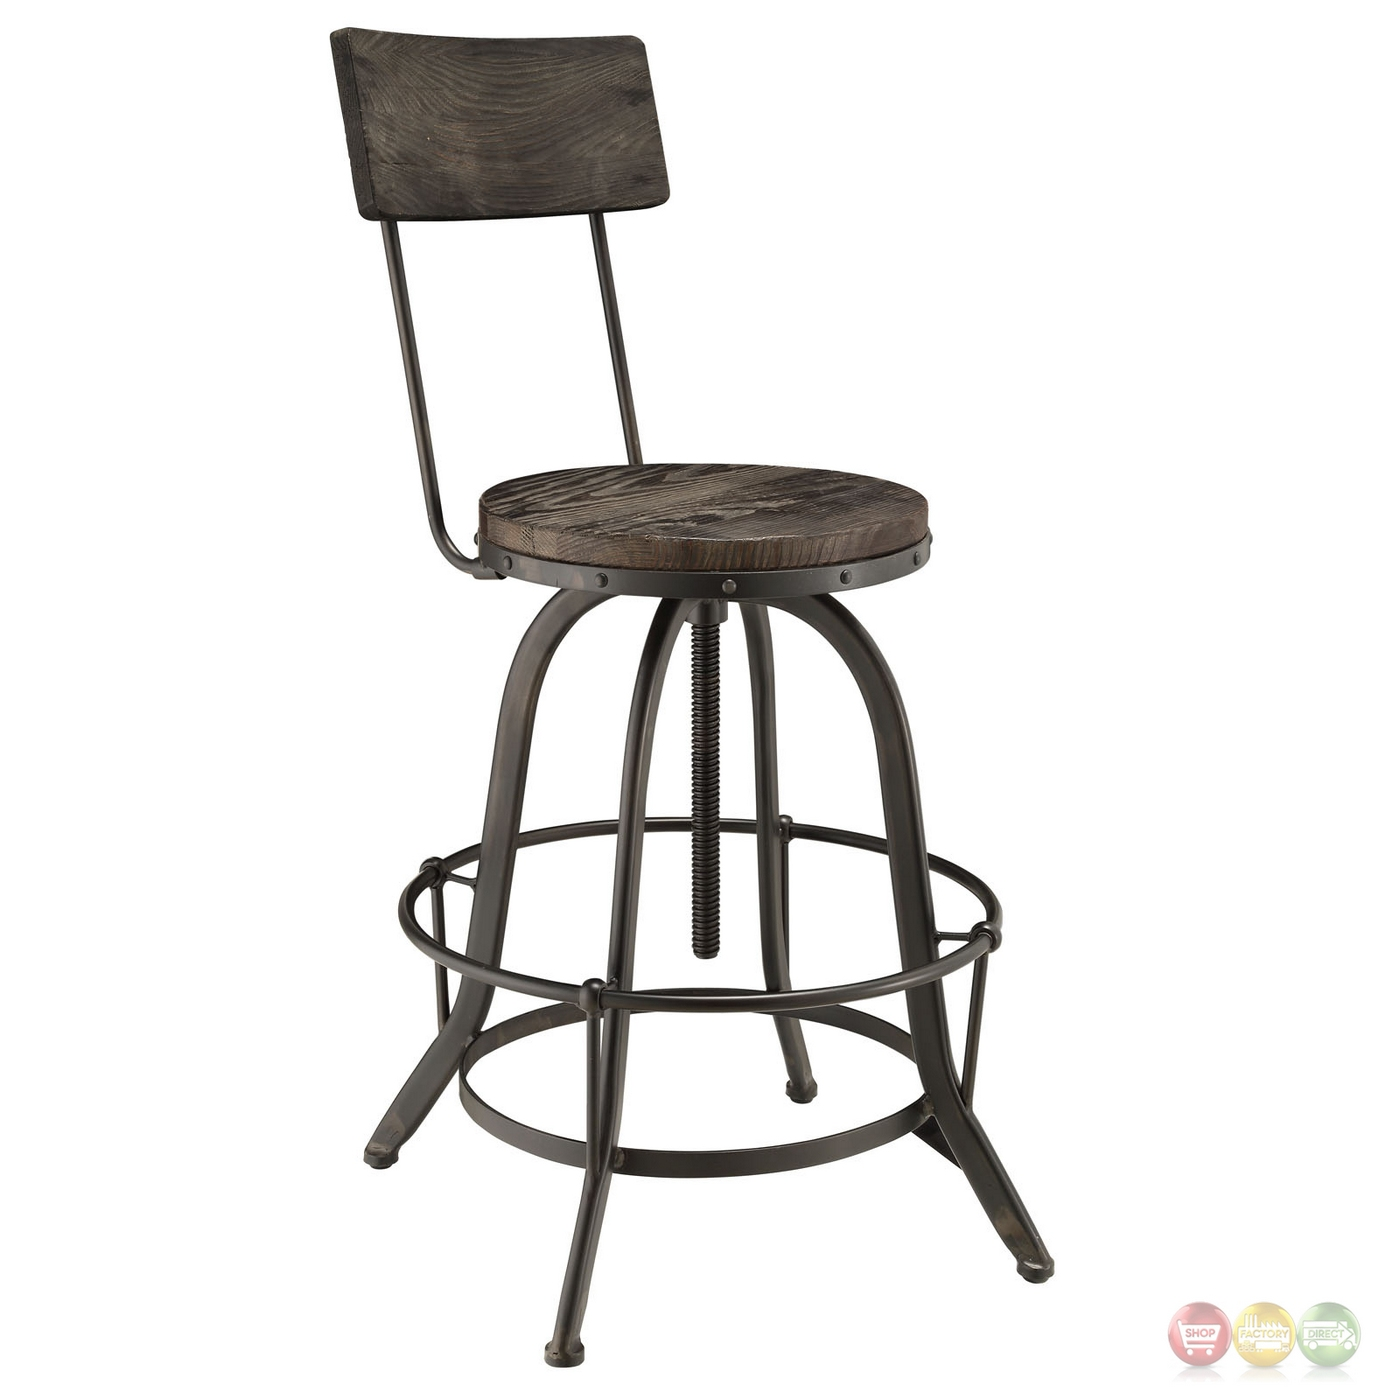 Set Of 2 Procure Industrial Bar Stool W Wood Seat Backs Cast Iron Frame Black